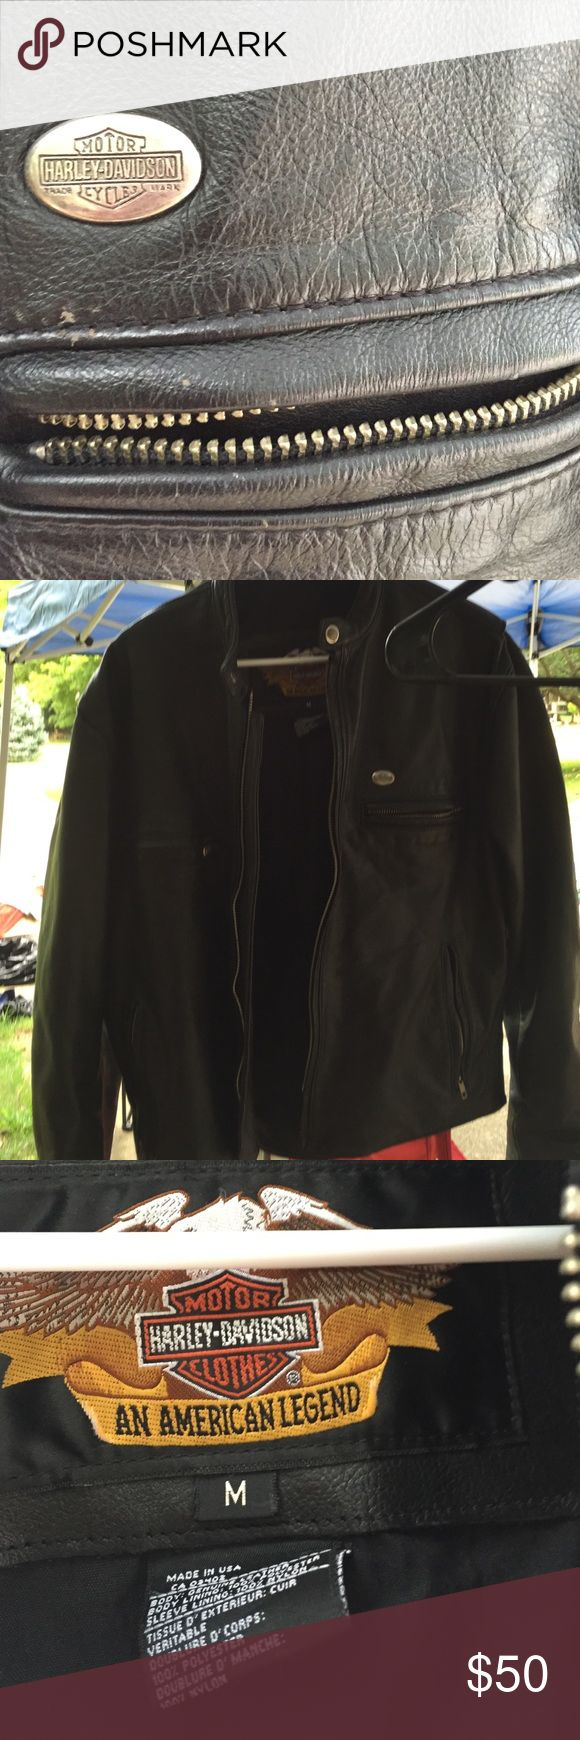 Harley Davidson womens leather coat Harley Davidson women's leather jacket. Small spot on left side,as shown in picture. Not really noticeable though Harley-Davidson Jackets & Coats